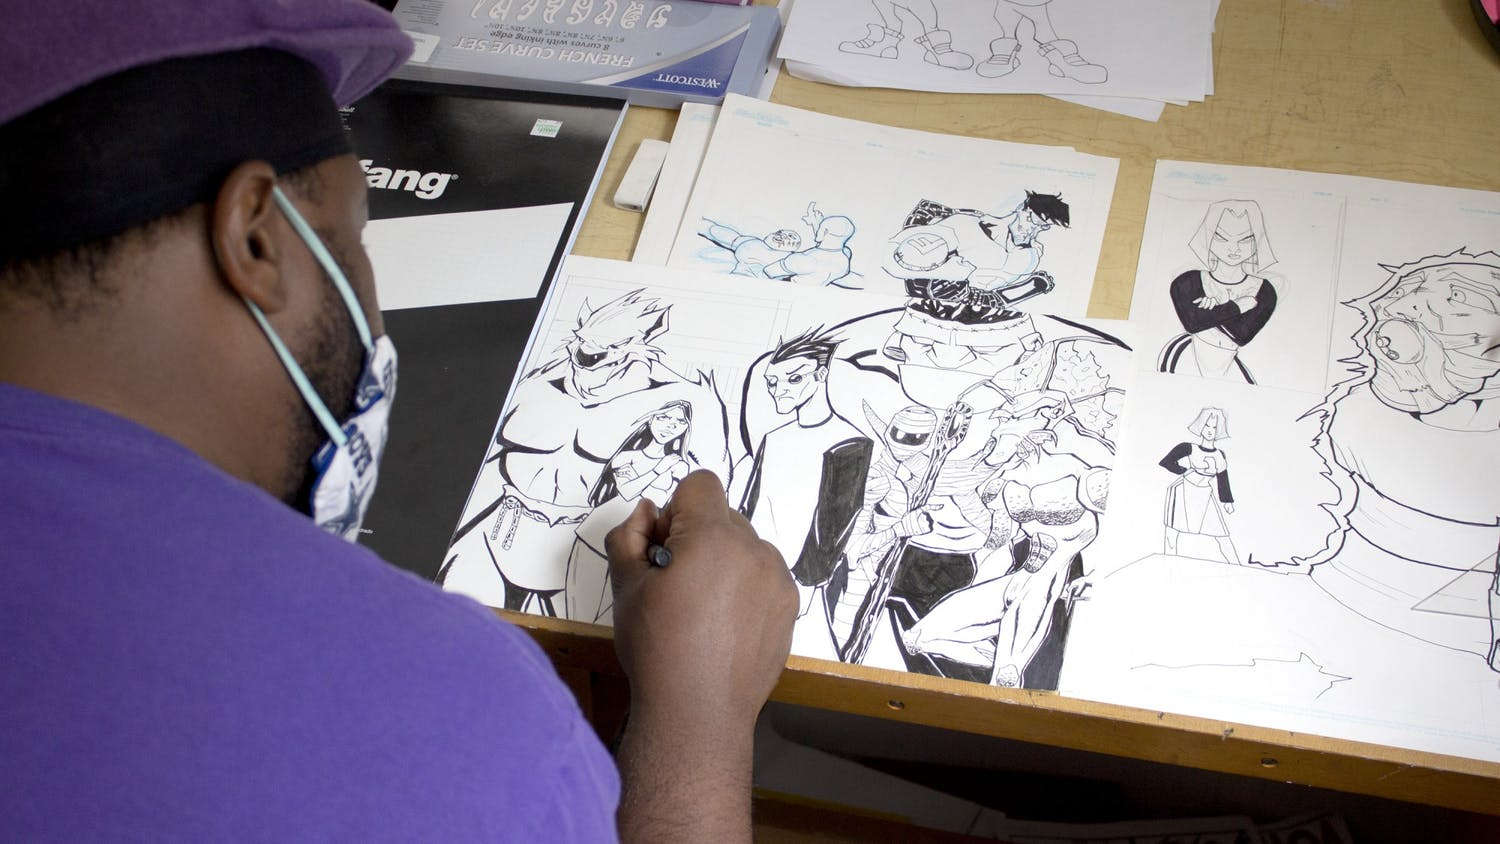 """Corey """"Roc Bottom"""" Davis works on several unfinished pieces in his home studio in Columbia, South Carolina. In the future, Davis said, he hopes to open a gallery to promote artists in the Columbia community."""